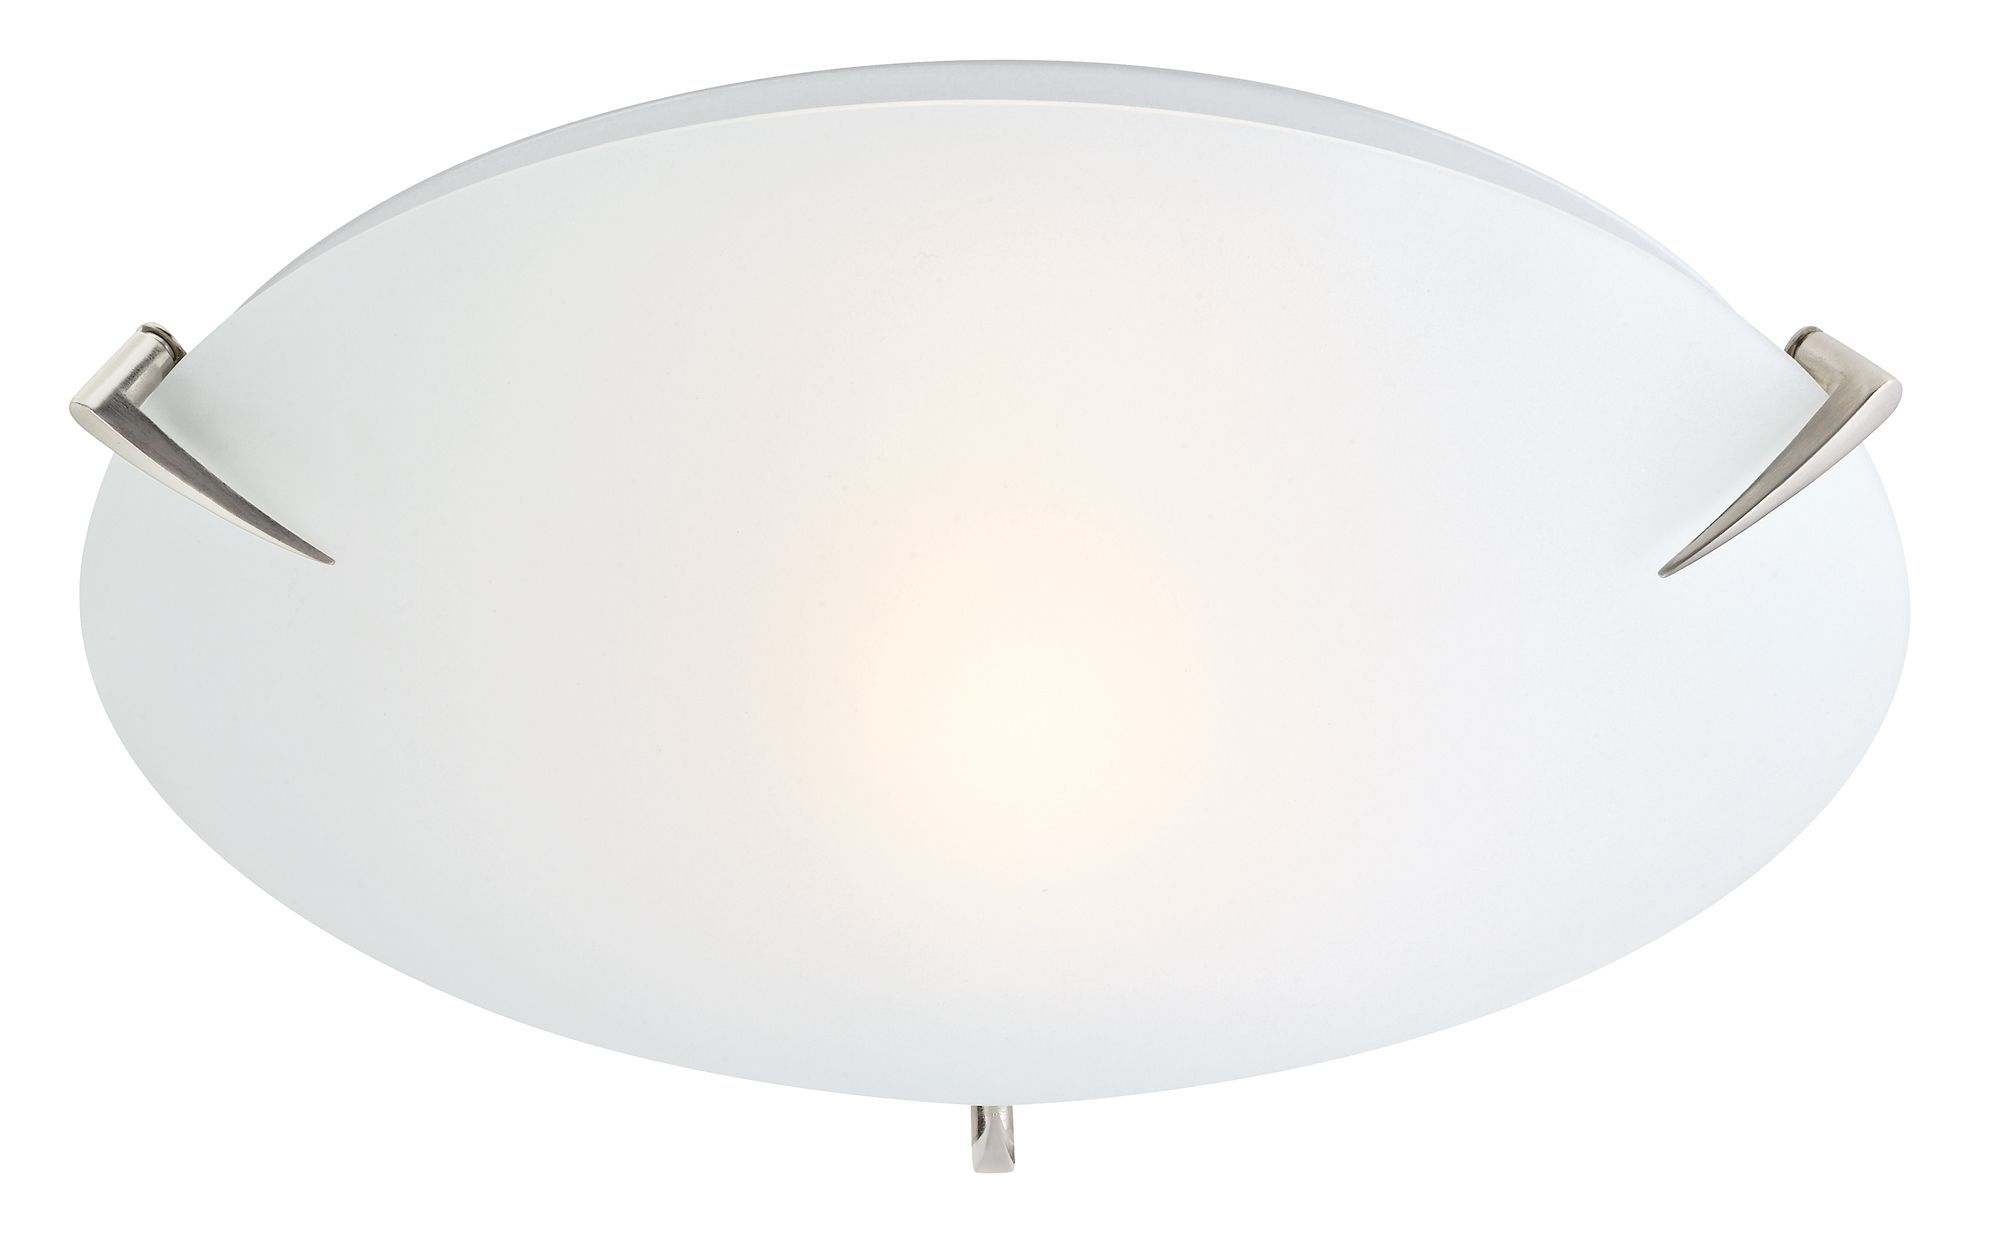 Outdoor Ceiling Lights B And Q : Sabinas white frosted ceiling light departments diy at b q